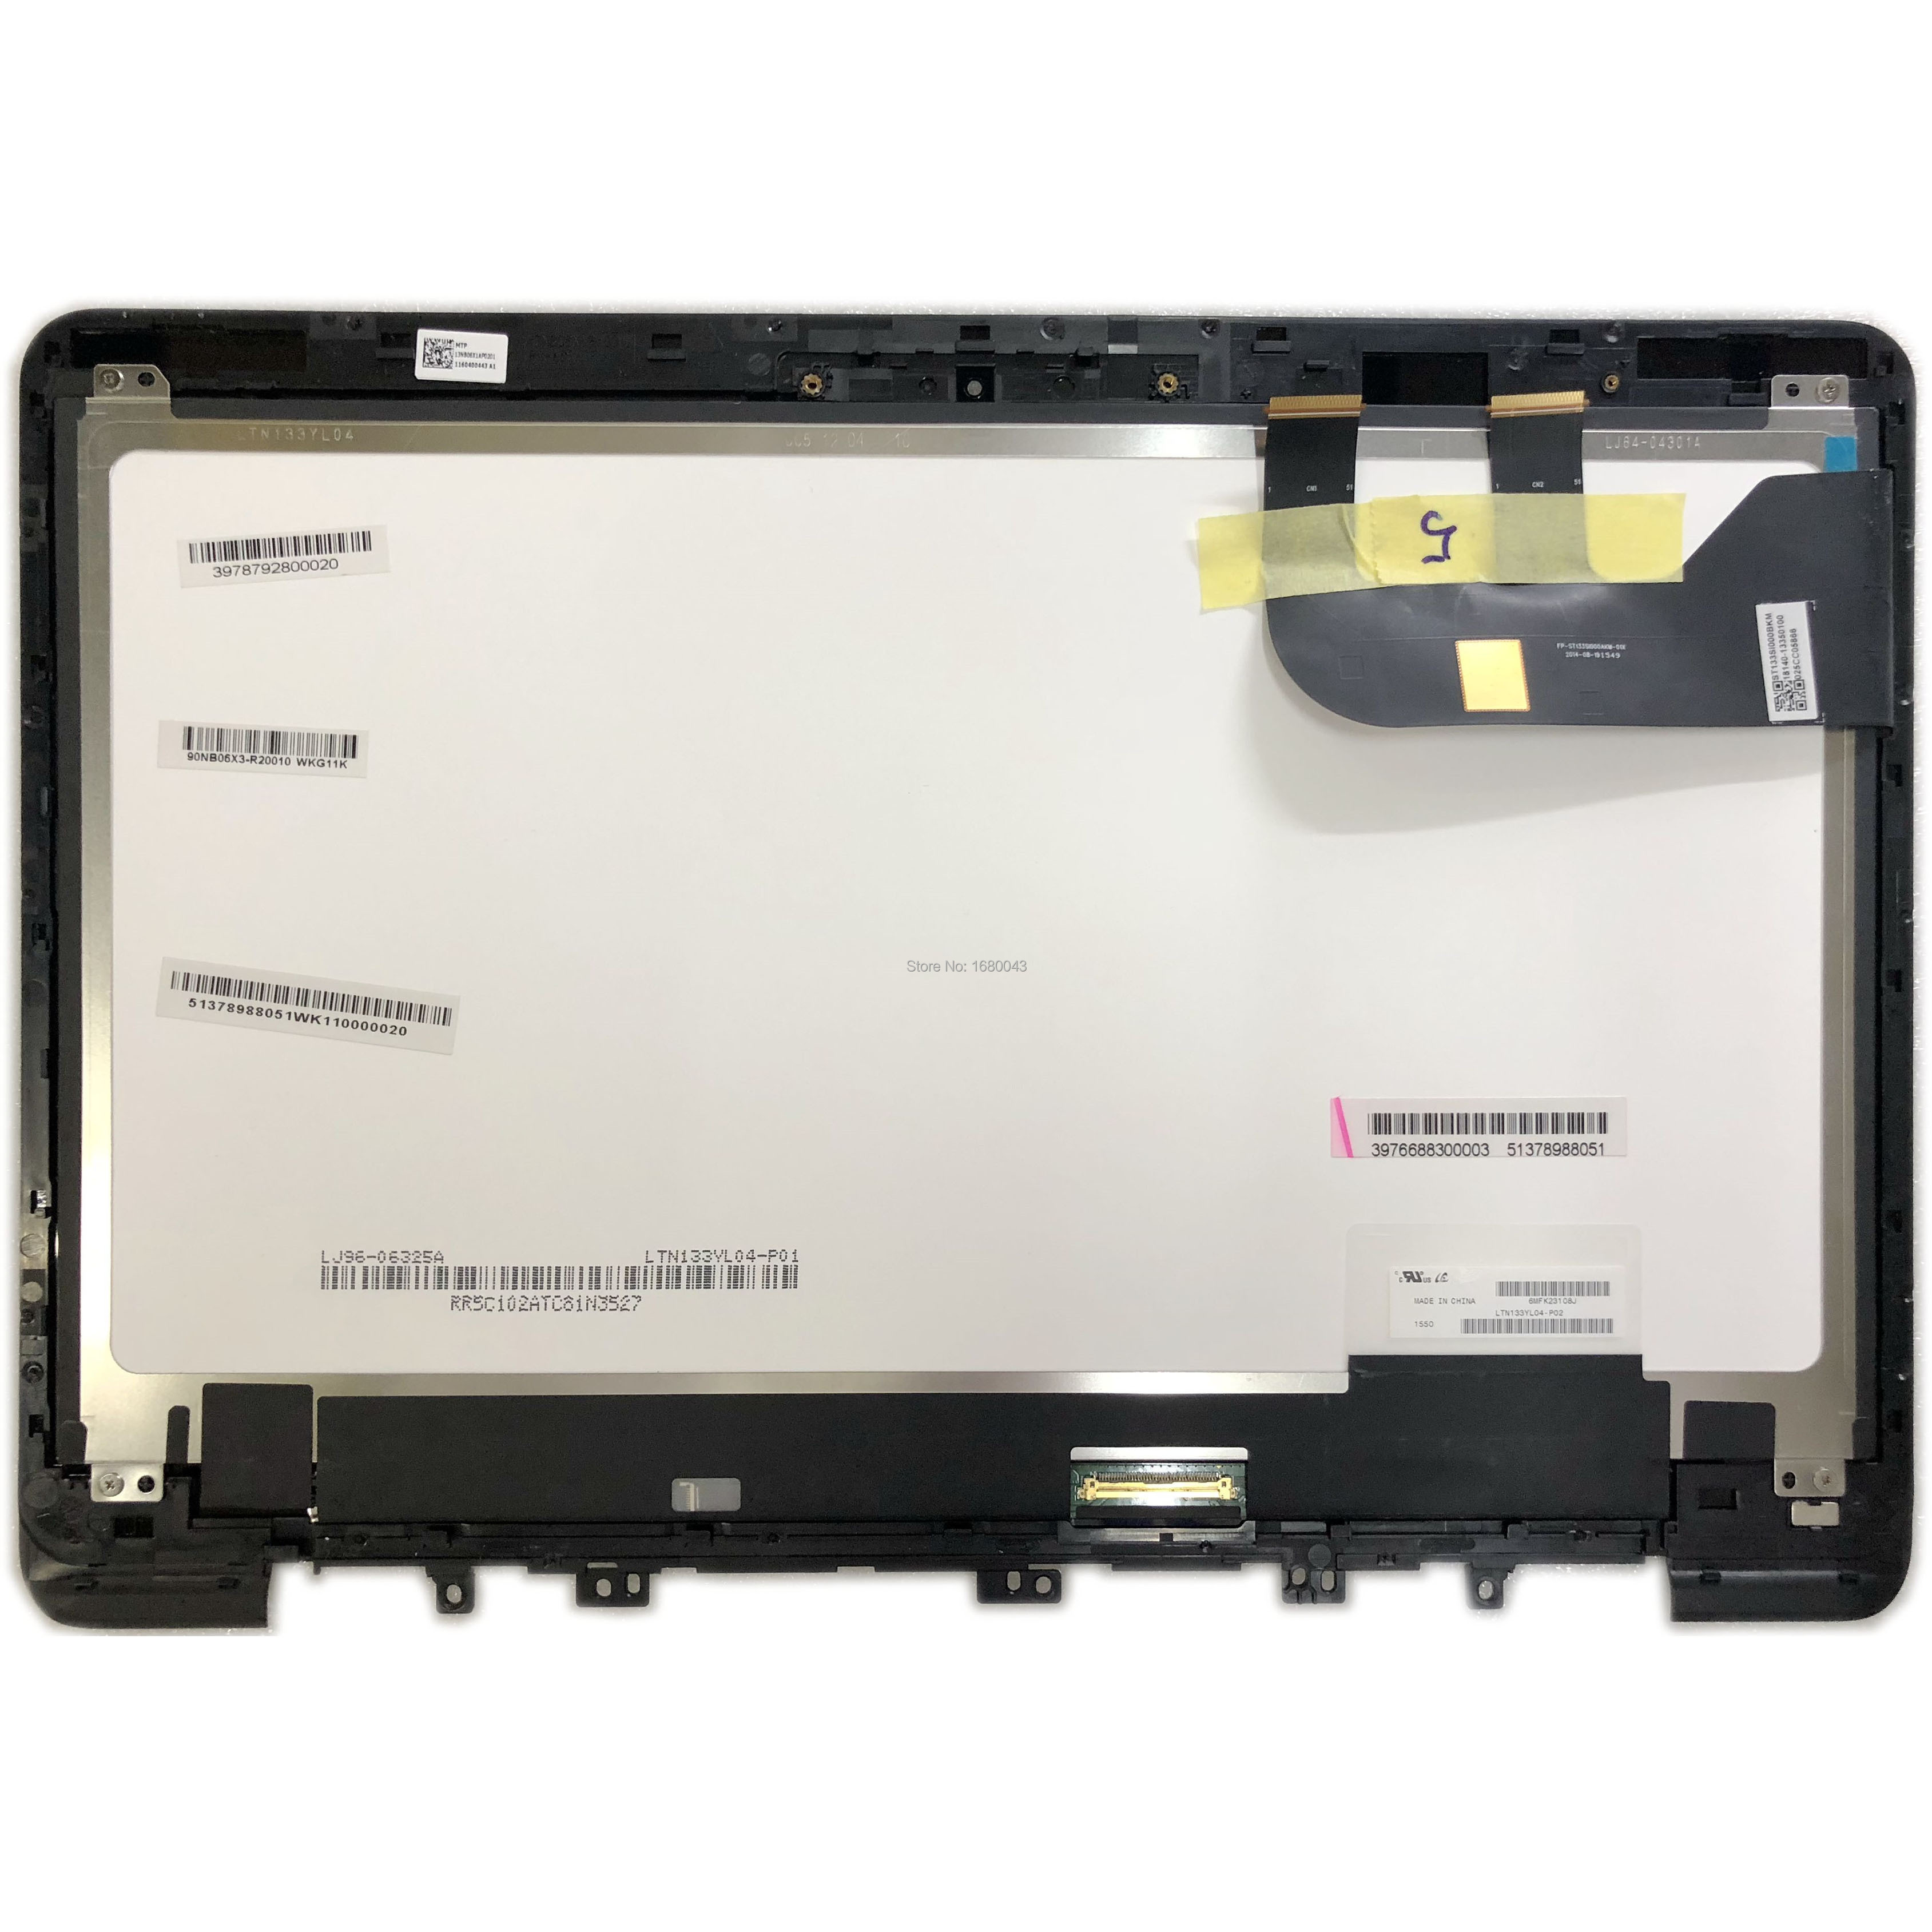 LTN133YL04 P02 LCD SCREEN Touch Screen Digitizer Assembly Frame Replacement FP-ST133SI000AKM-01X For Asus Zenbook UX305 UX305CALTN133YL04 P02 LCD SCREEN Touch Screen Digitizer Assembly Frame Replacement FP-ST133SI000AKM-01X For Asus Zenbook UX305 UX305CA